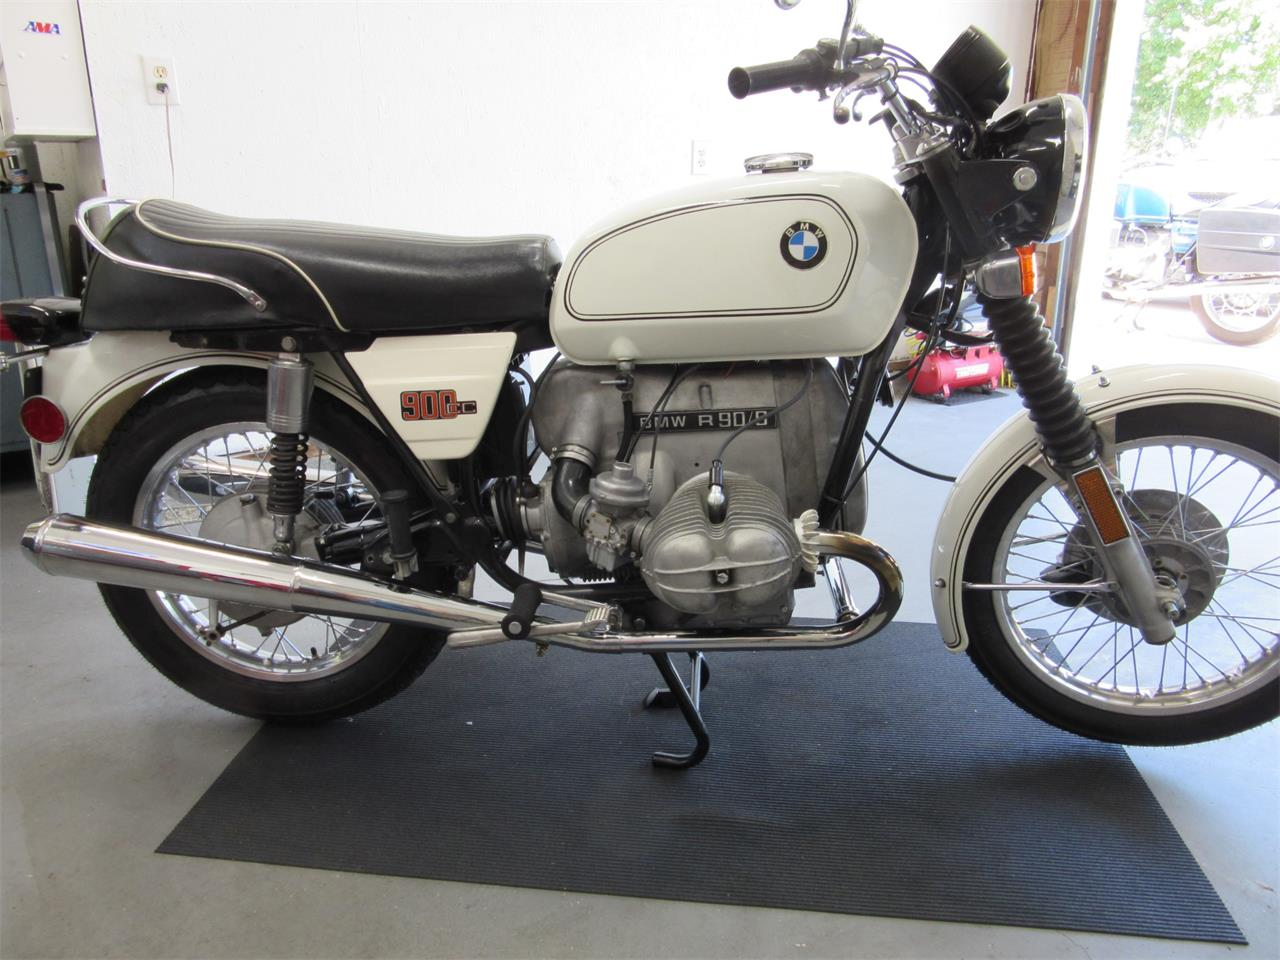 1974 BMW Motorcycle for Sale | ClassicCars com | CC-1255867